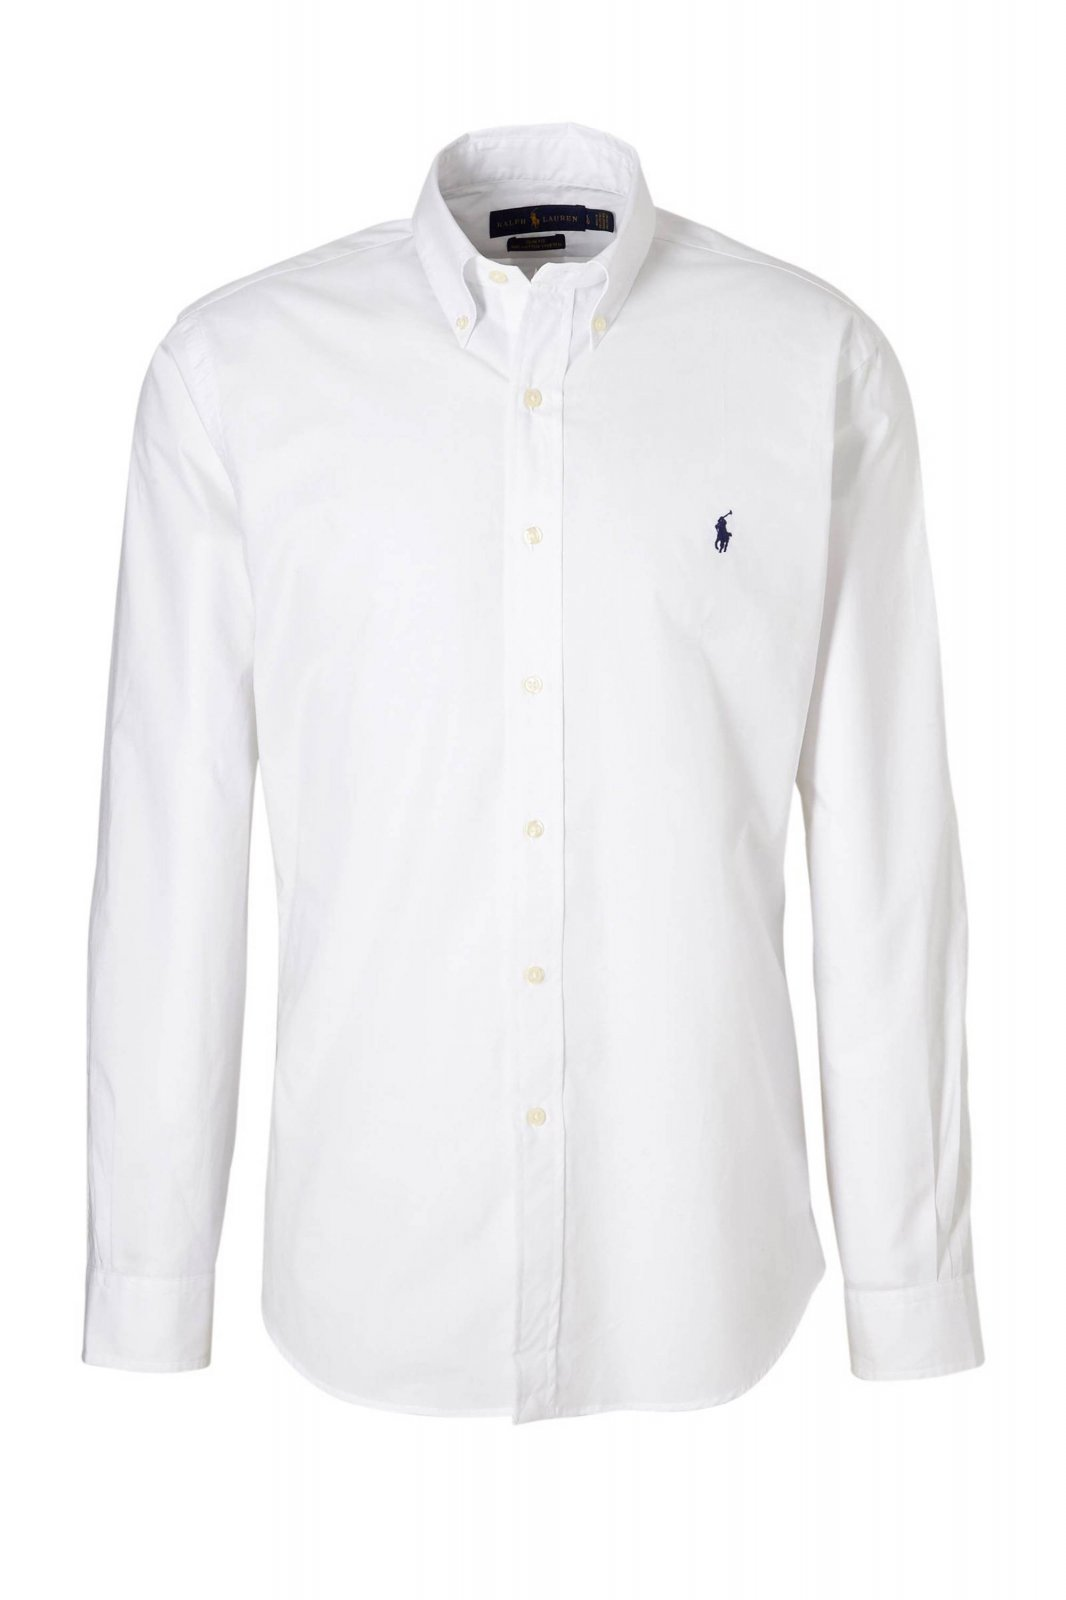 Polo Homme Lauren Ralph 710654408Chemises Pour Chemise YeWE2DH9I